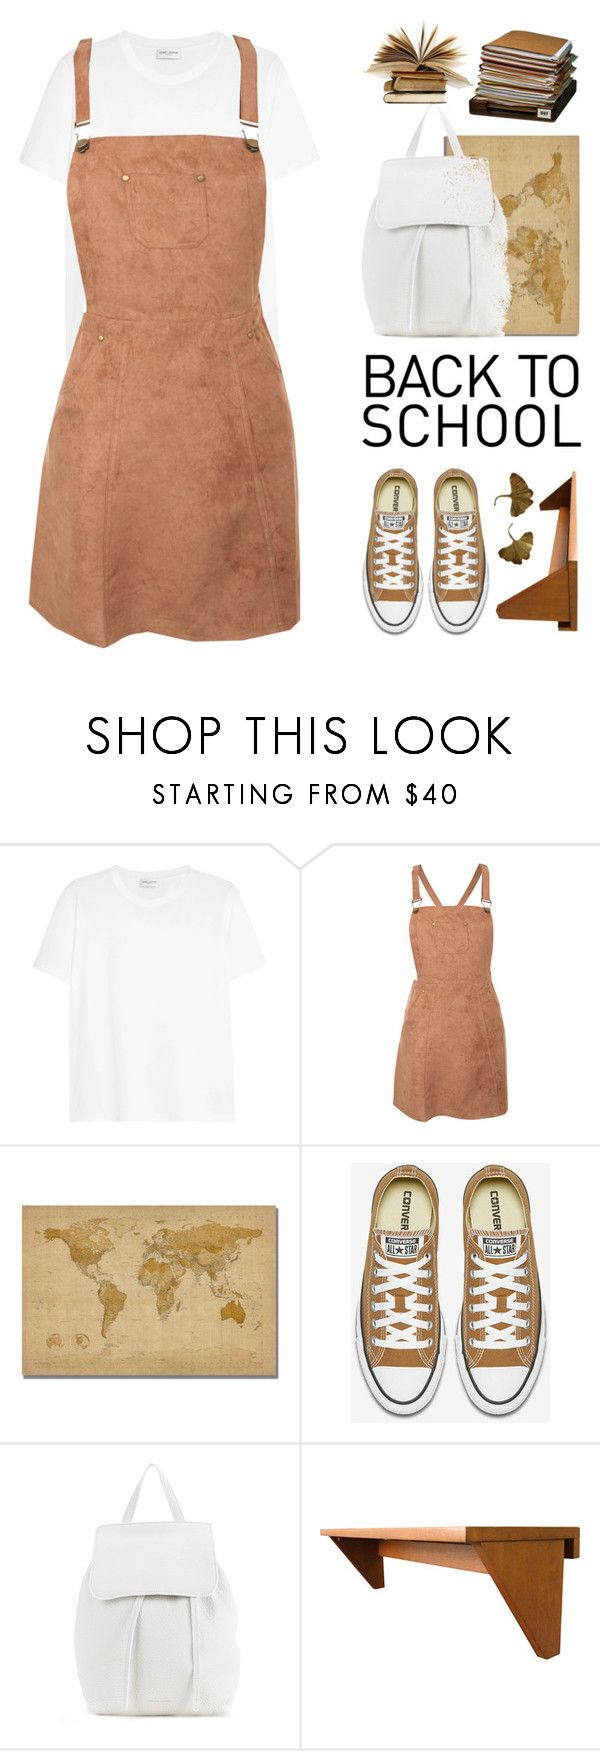 """Back to school"" by fanfanfann ❤ liked on Polyvore featuring Yves Saint Laurent, Pilot, Trademark Fine Art and Mansur Gavriel"